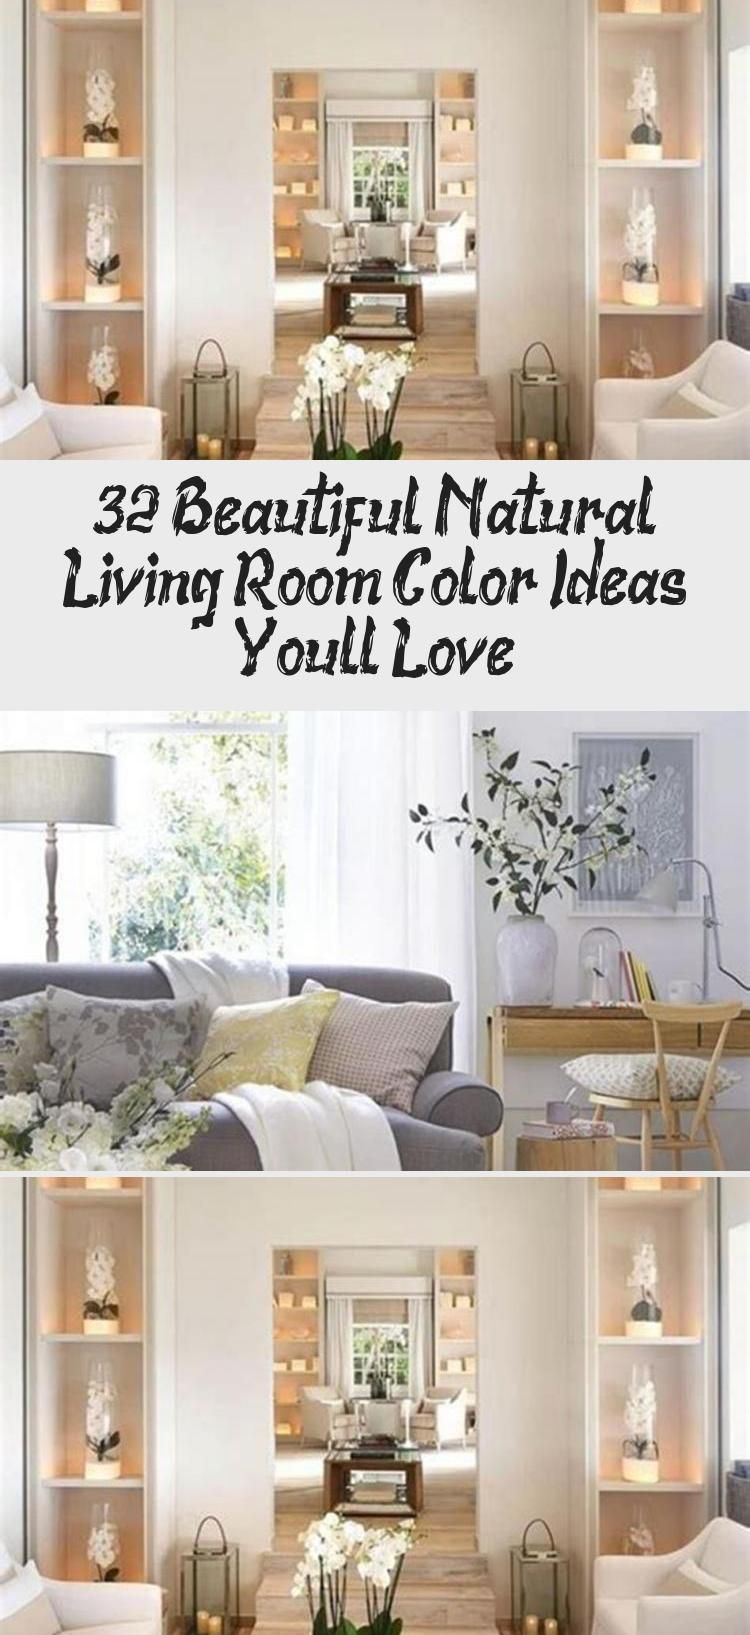 32 Beautiful Natural Living Room Color Ideas You Will Love 15 #RusticModernHouseInterior #ModernHouseInteriorColour #ModernHouseInteriorDIY #ModernHouseInteriorWalls #ModernHouseInteriorGreen